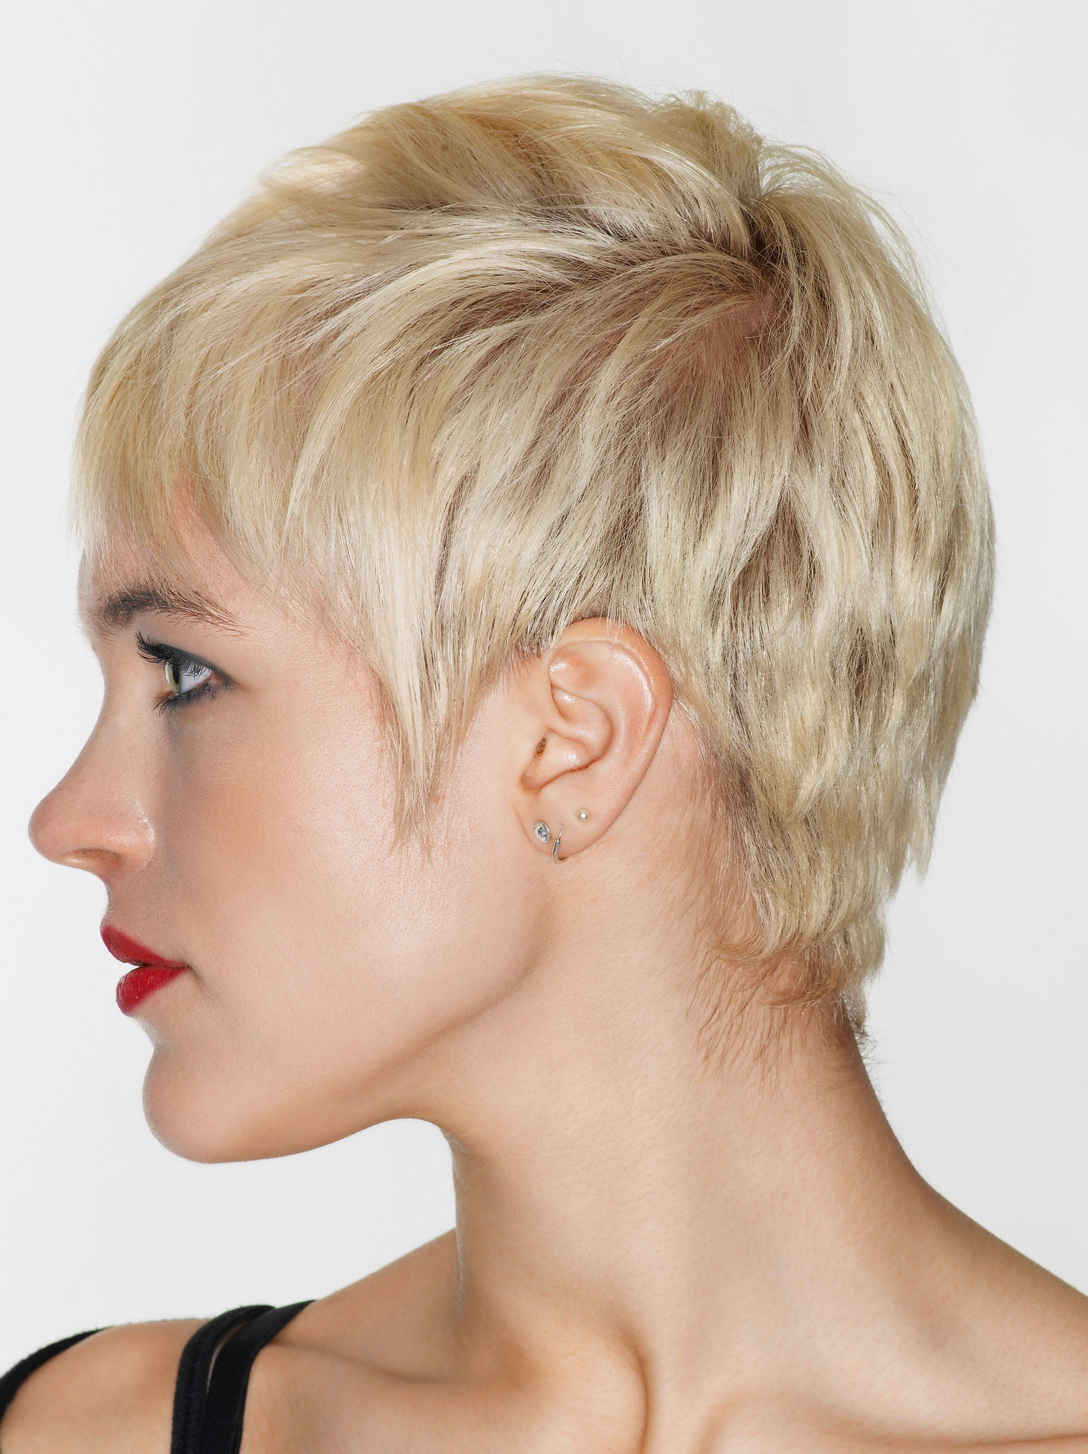 Short Layered Pixie Haircut For Inverted Triangle And Heart Faces 2018 Pertaining To Pixie Layered Short Haircuts (View 12 of 25)